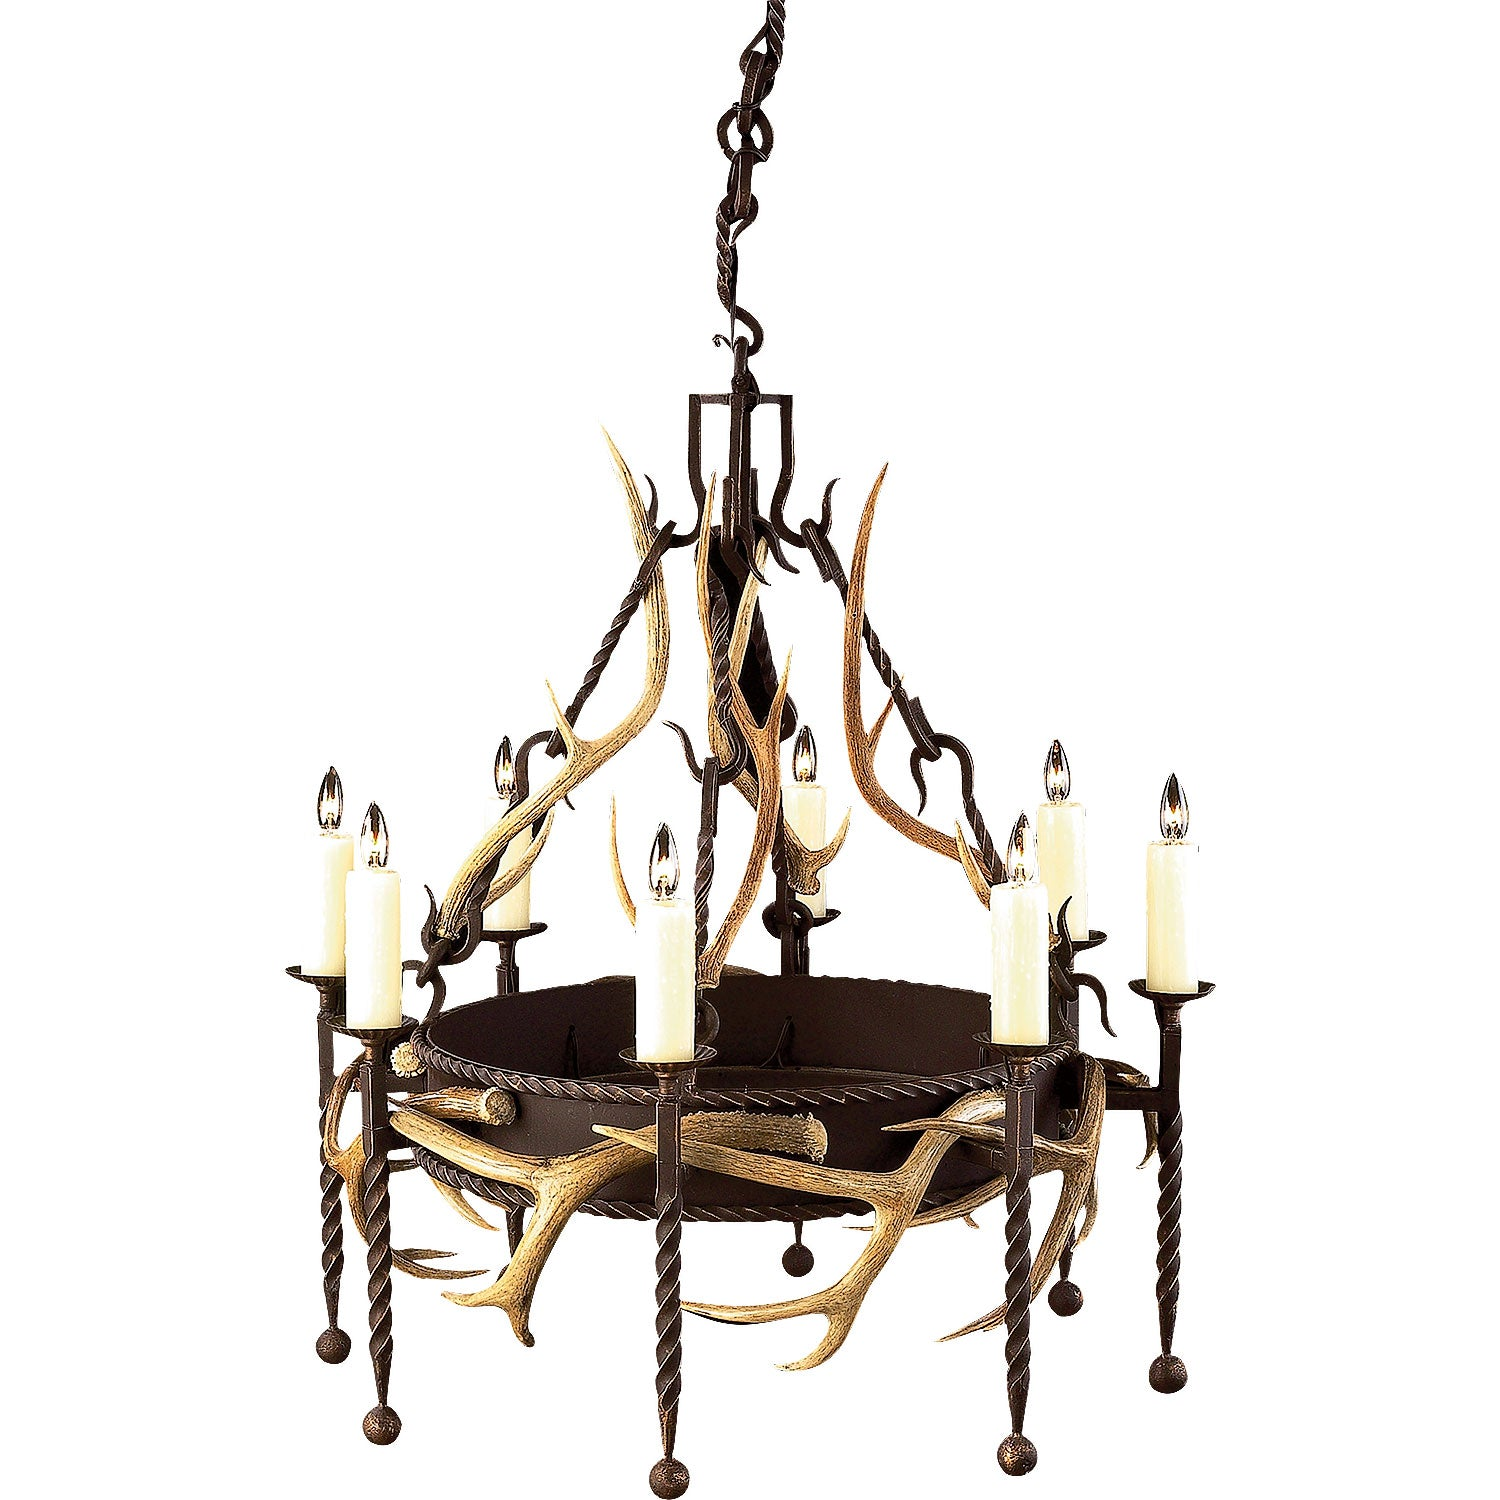 8 Light, Single Tier Lodge with Antlers - Antlerworx